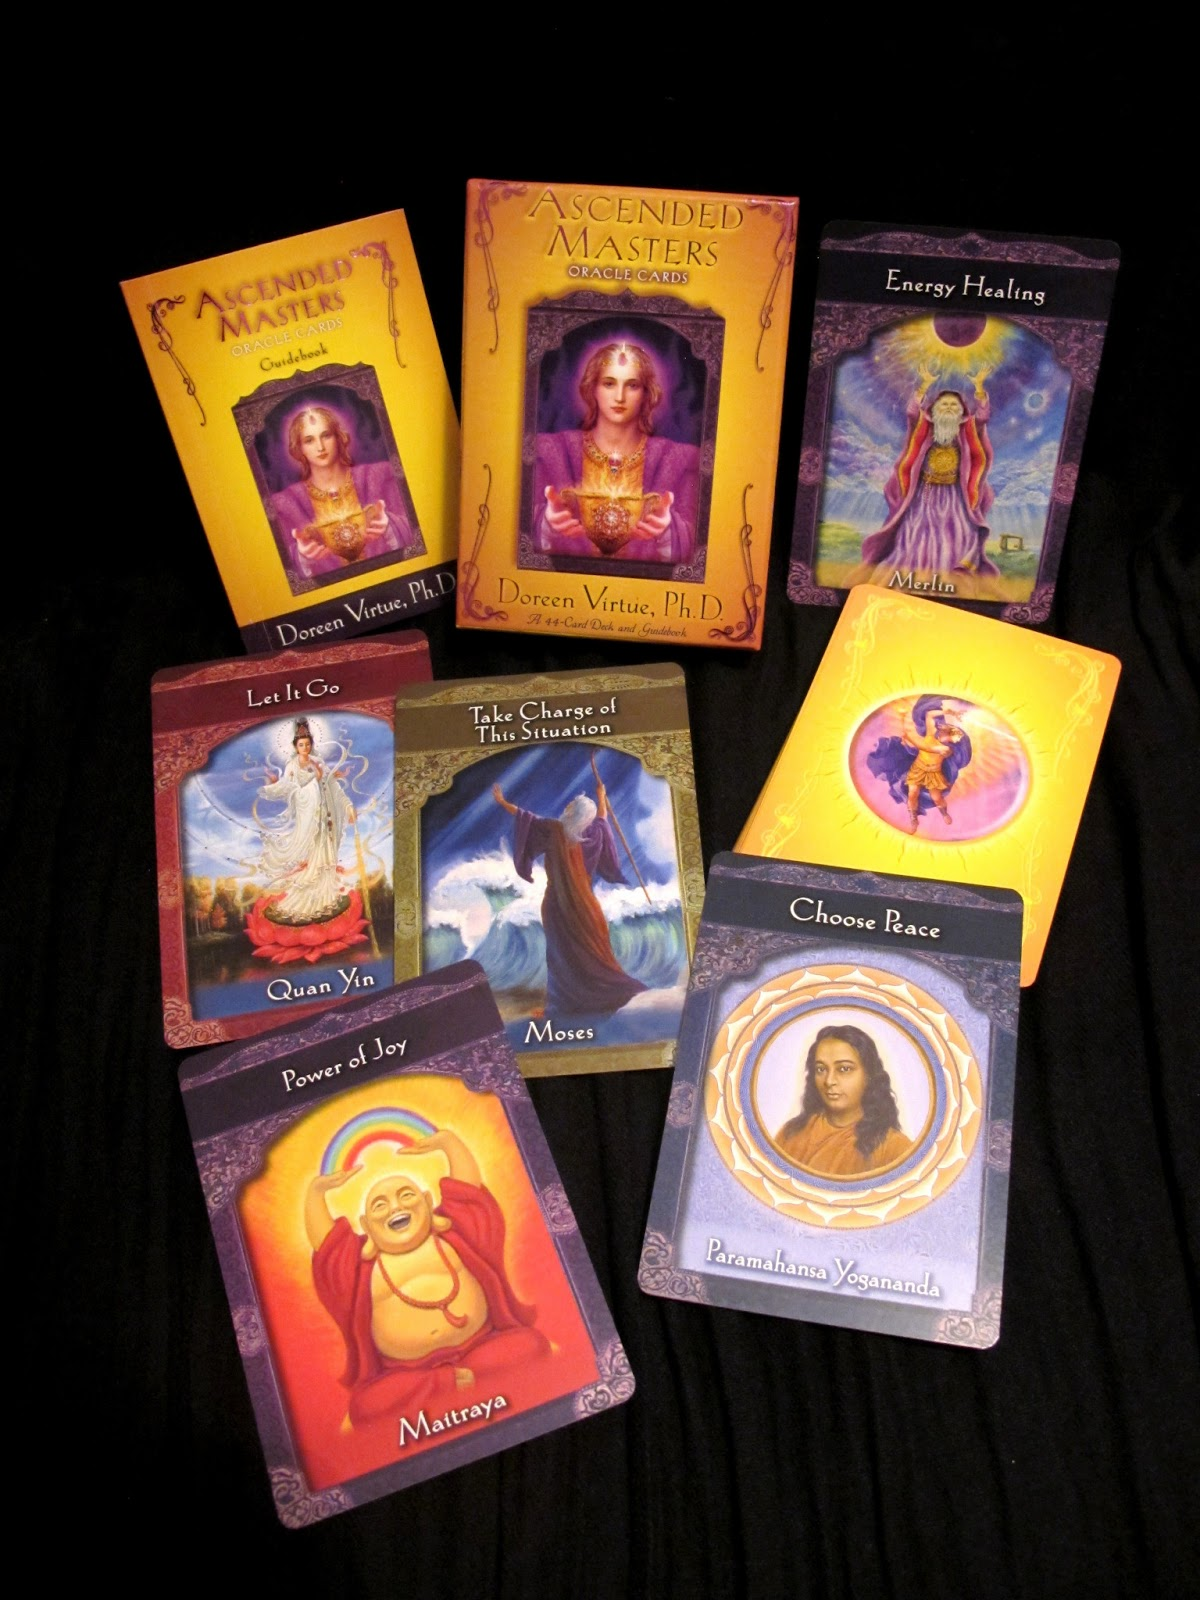 Inspired Pathways of Being: Review: Ascended Masters oracle